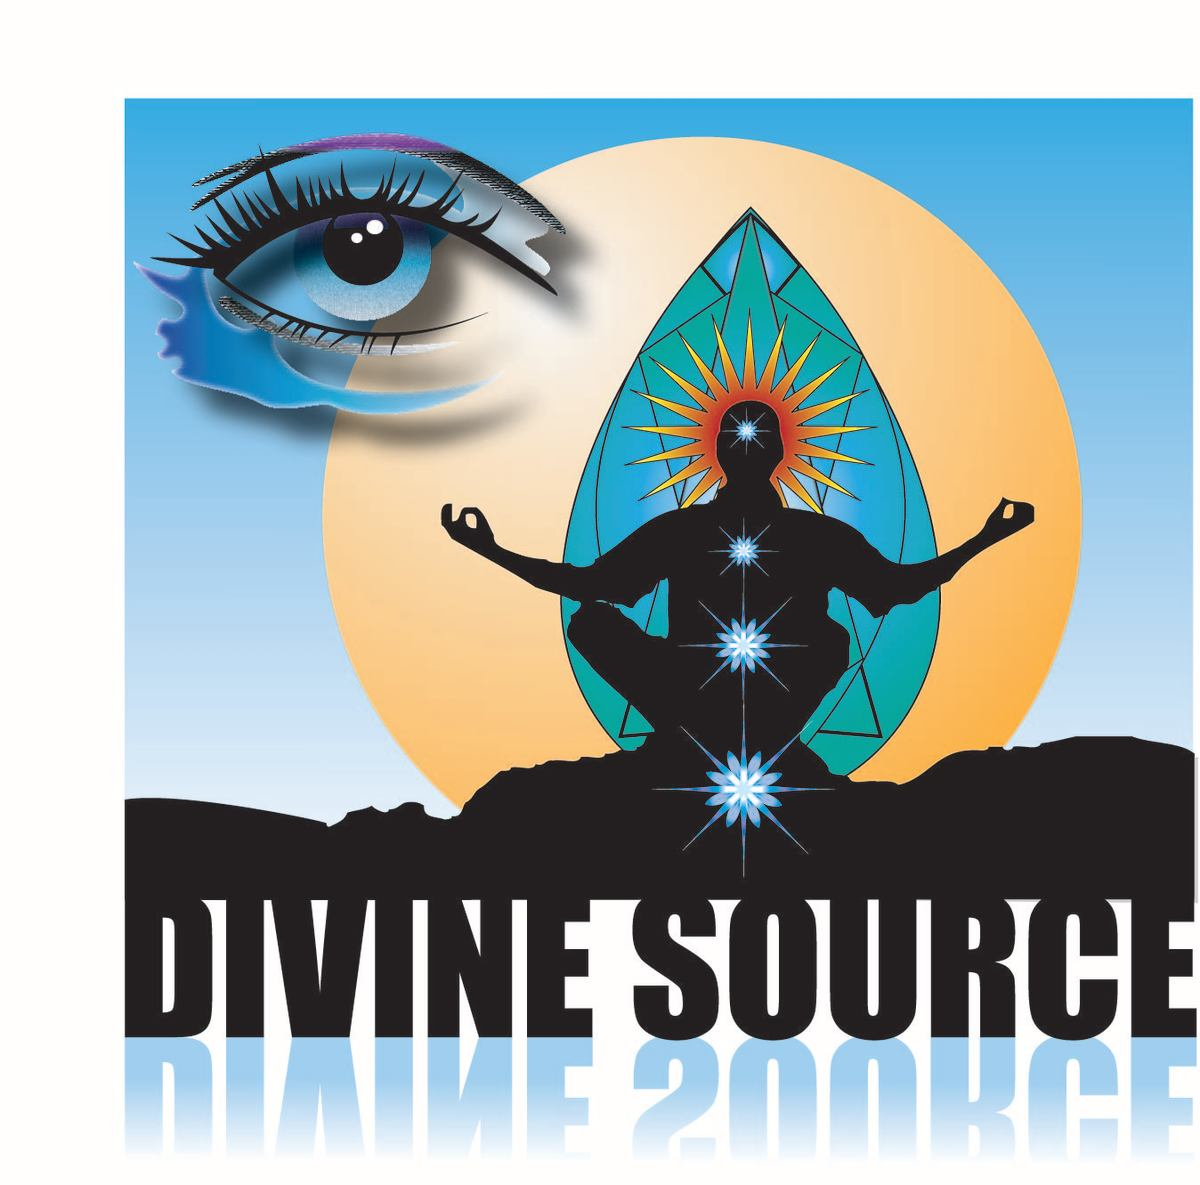 Many cultures link the pineal gland or third eye to the Divine Source. I believe it is used when meditating to create communication with higher dimensions.